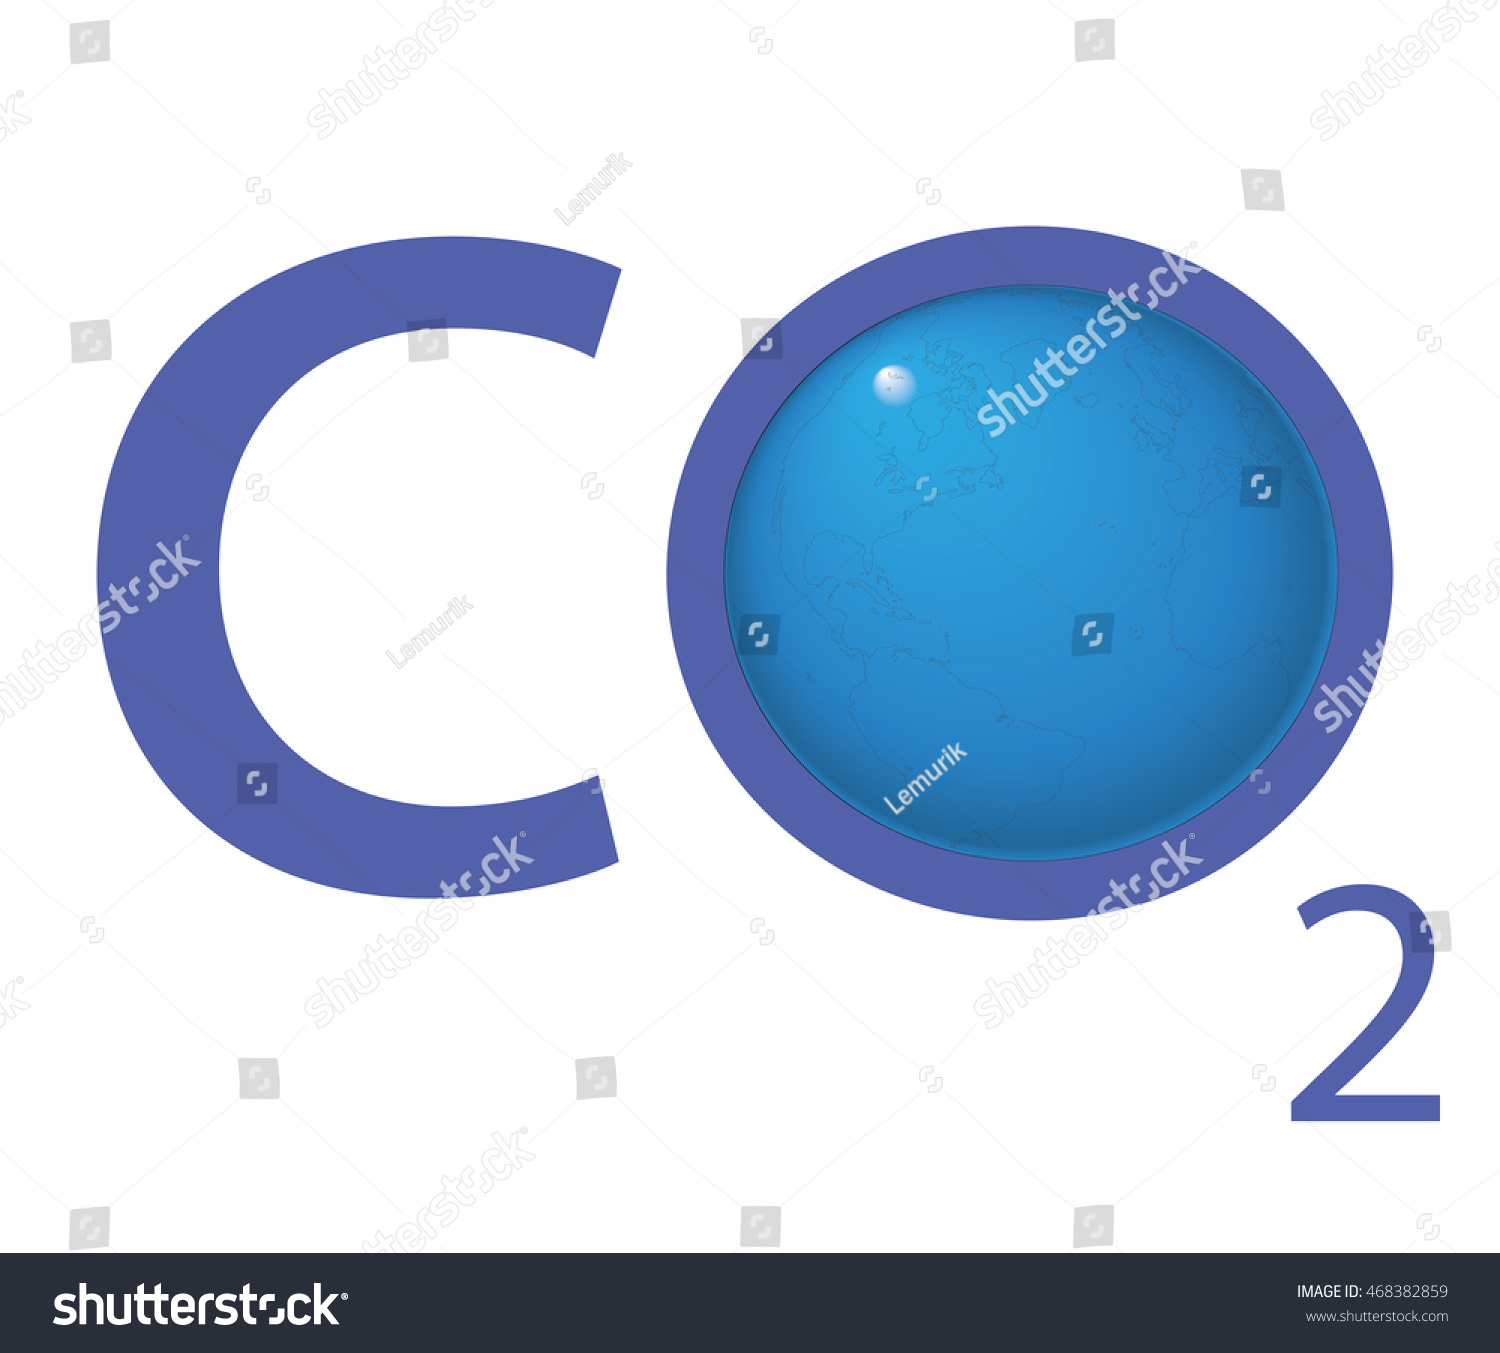 Chemical symbol co2 carbon dioxide blue stock vector 468382859 chemical symbol co2 for carbon dioxide in blue a globe is replacing the letter o buycottarizona Images